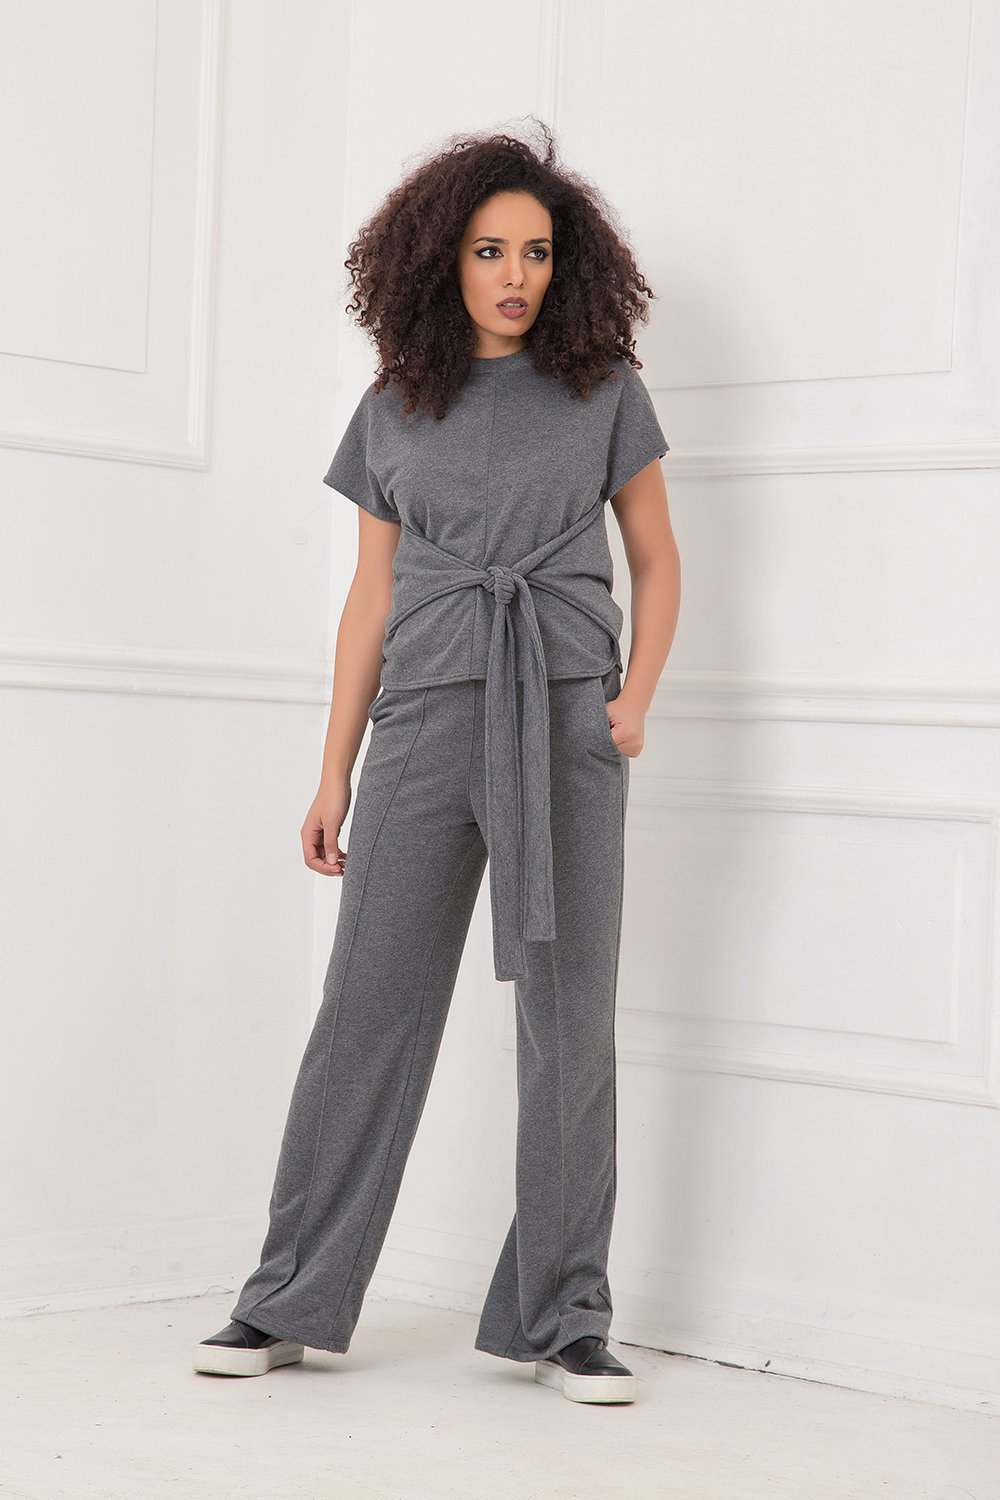 Wide Leg Pants, Gray Pants, Plus Size Pants, Women Pants, Straight Pants, Minimalist Pants, Oversized Pants, Urban Clothing, Street Pants